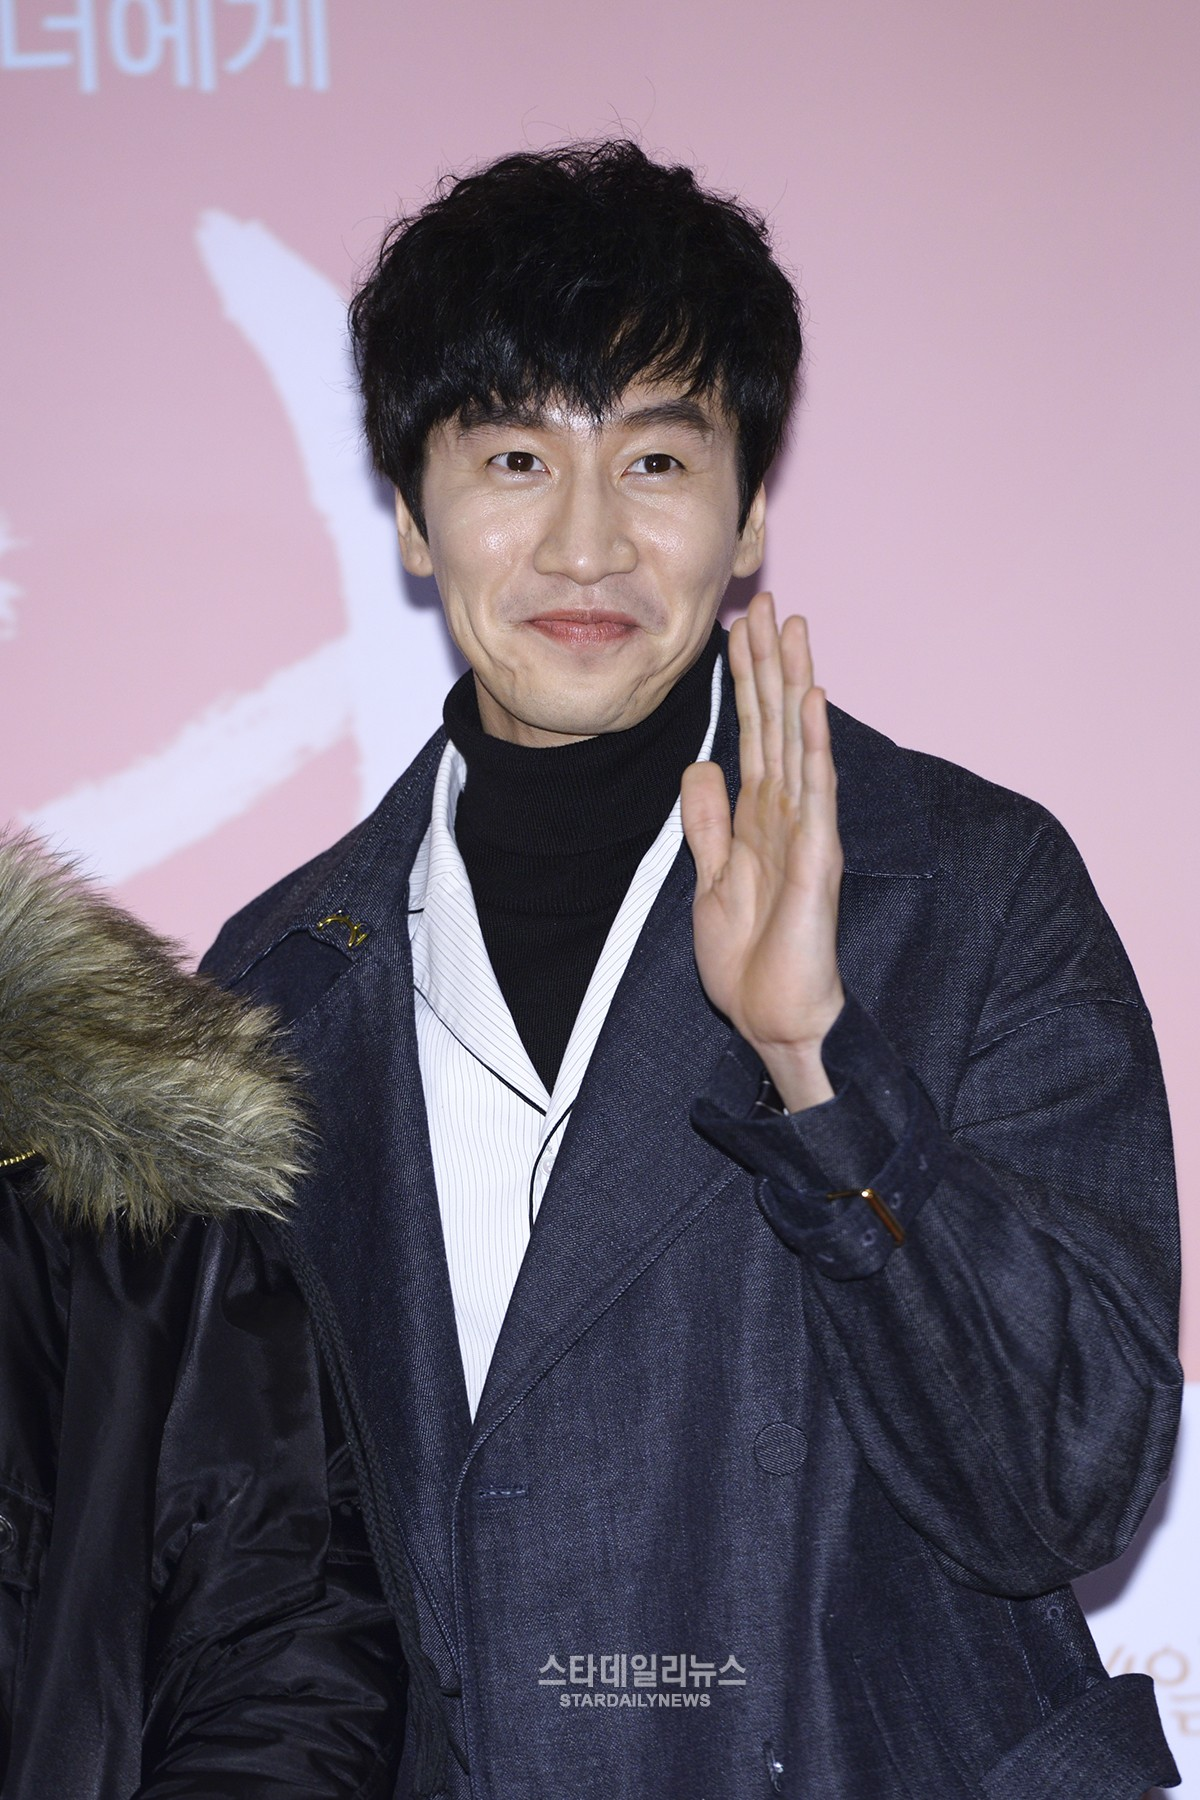 Lee Kwang Soo in Talks to Star in Sitcom Based on Webtoon The Sound of the Heart